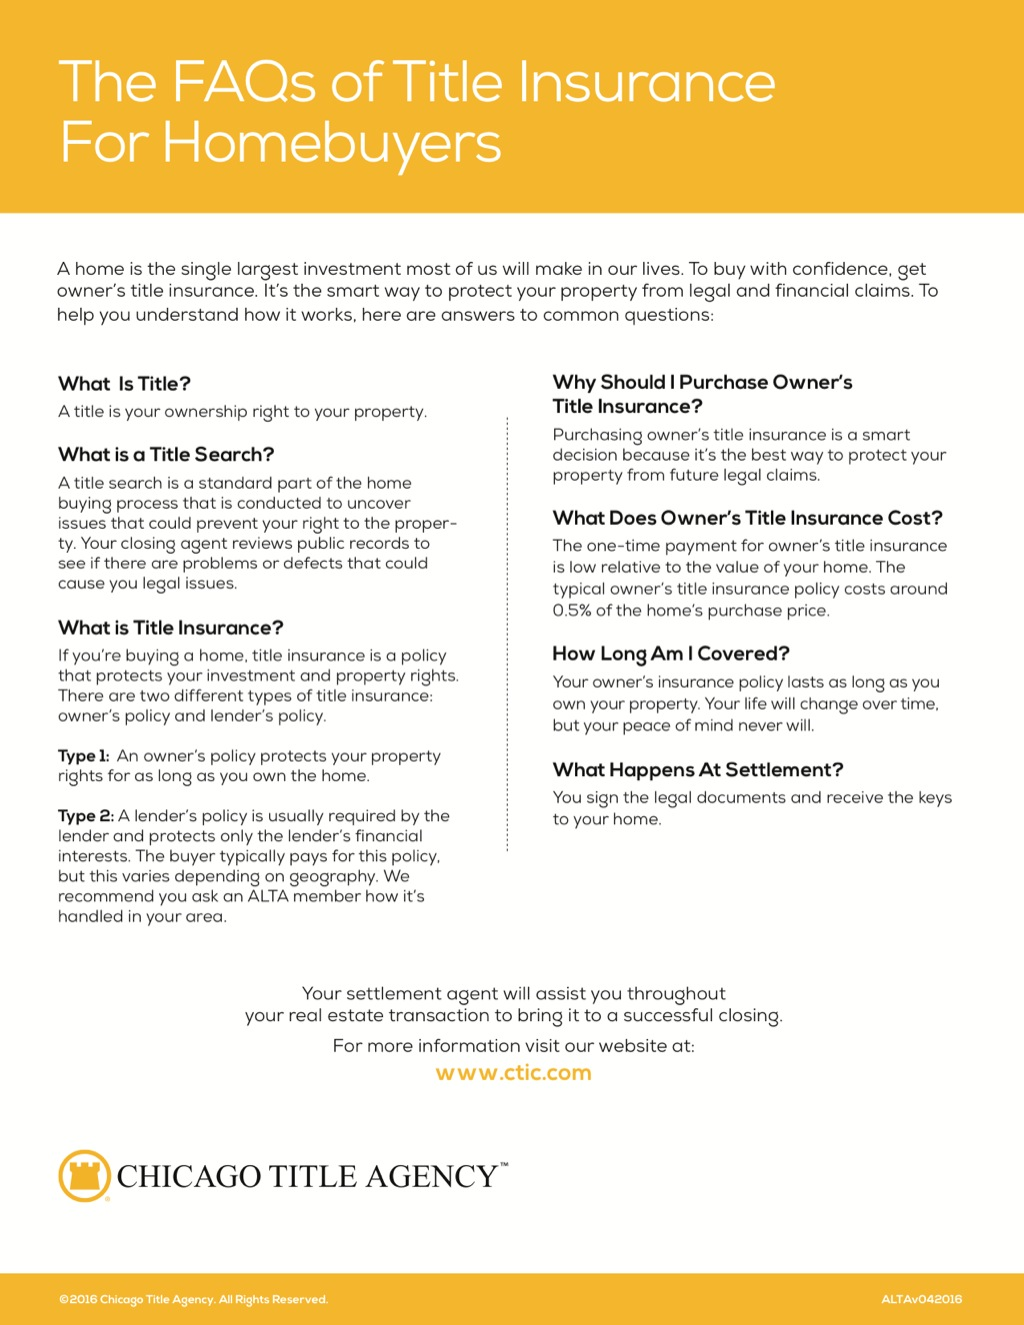 Corefact The FAQs of title insurance - CTA